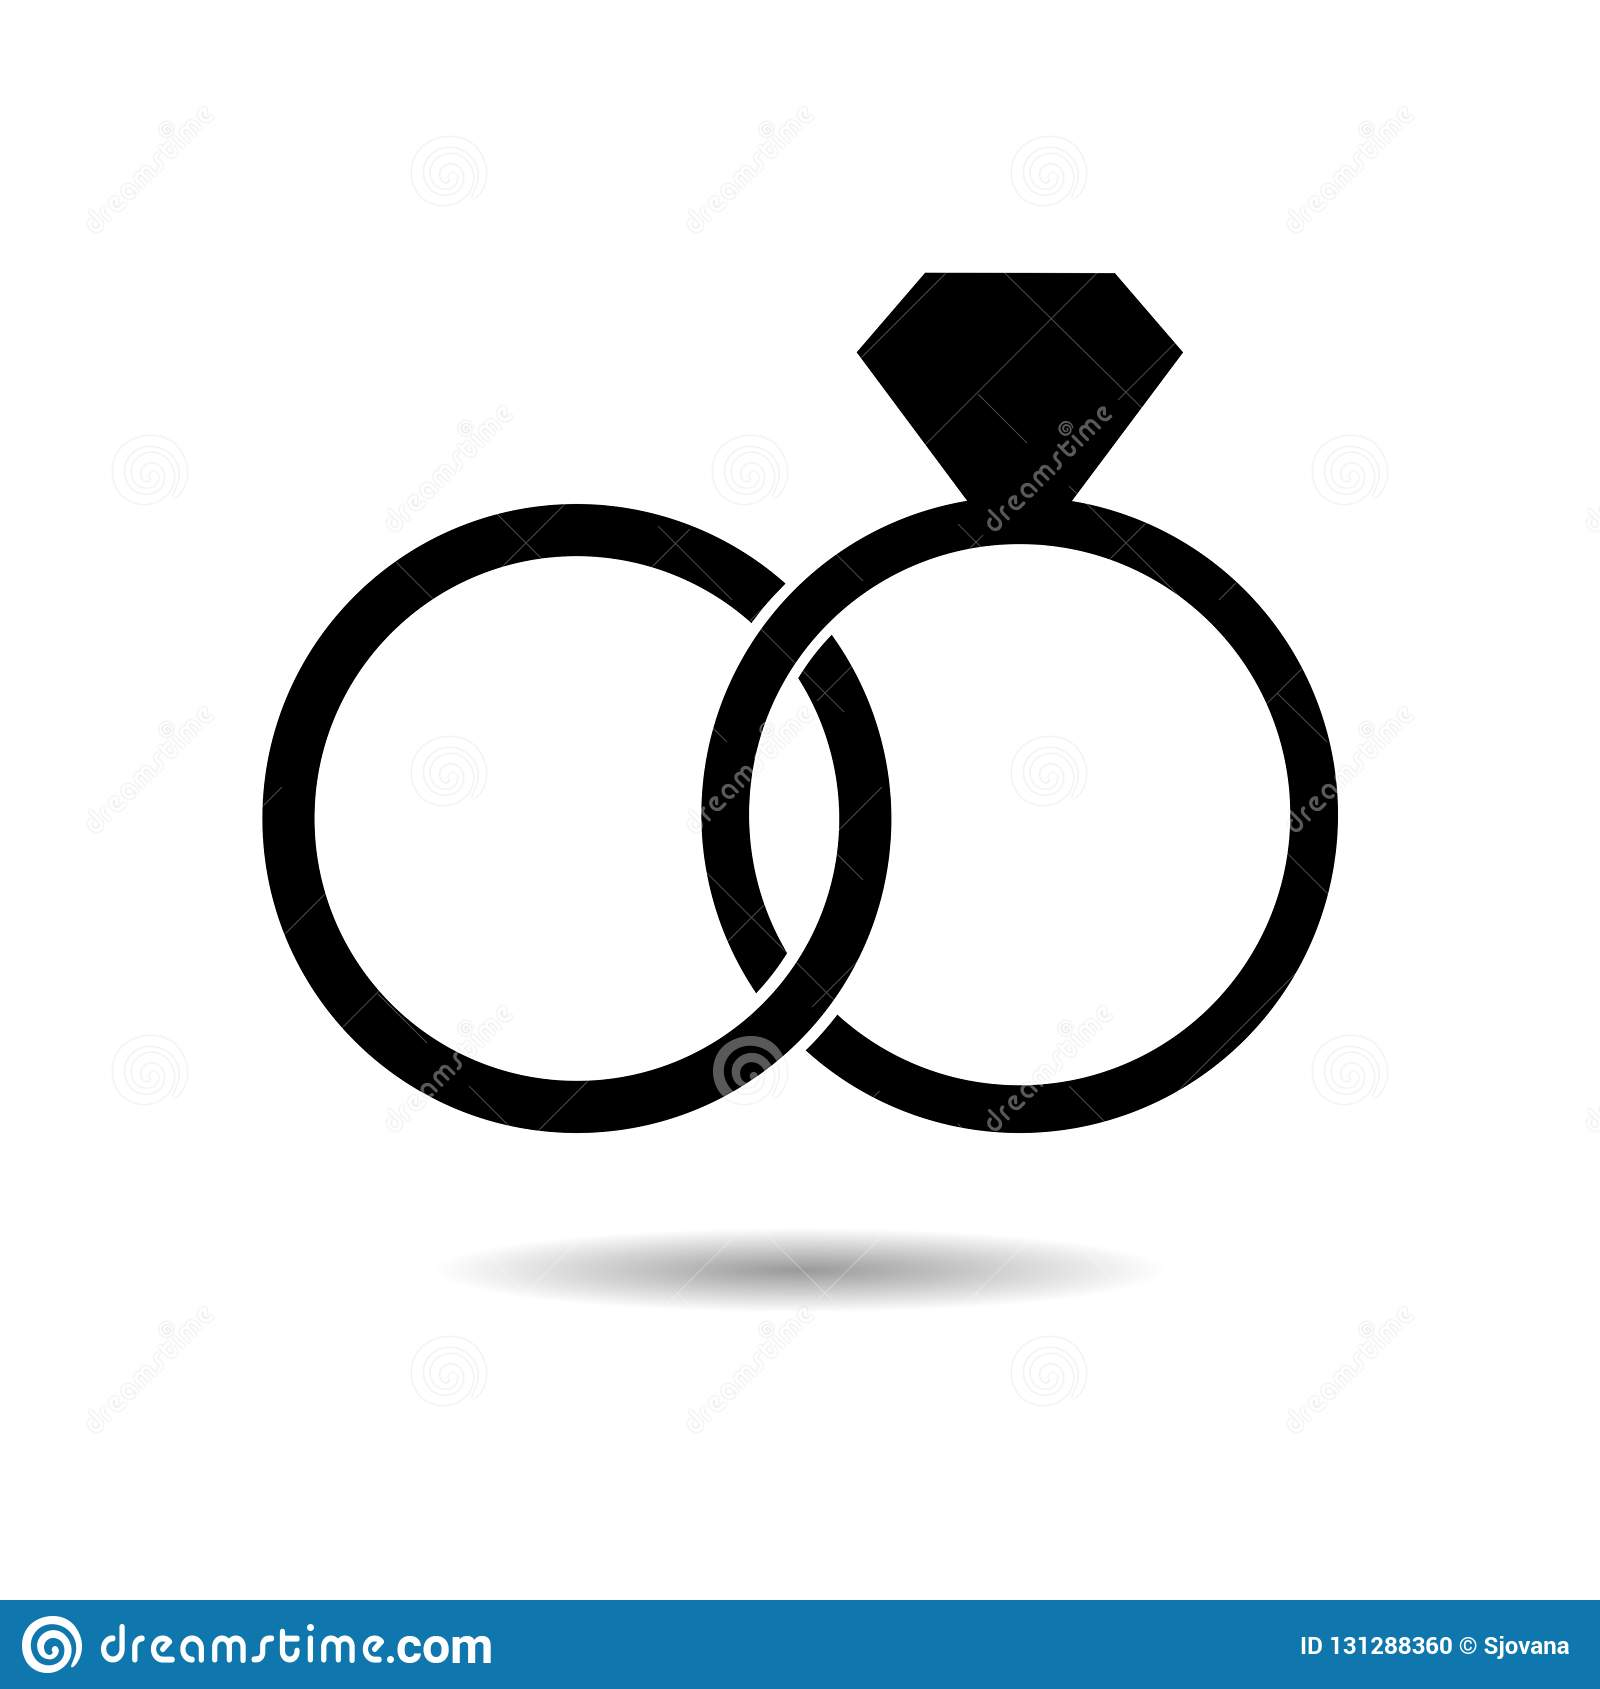 black wedding ring with diamond simple icon or logo stock vector illustration of carat marry 131288360 https www dreamstime com black wedding ring diamond simple icon logo white black wedding ring diamond simple icon logo image131288360